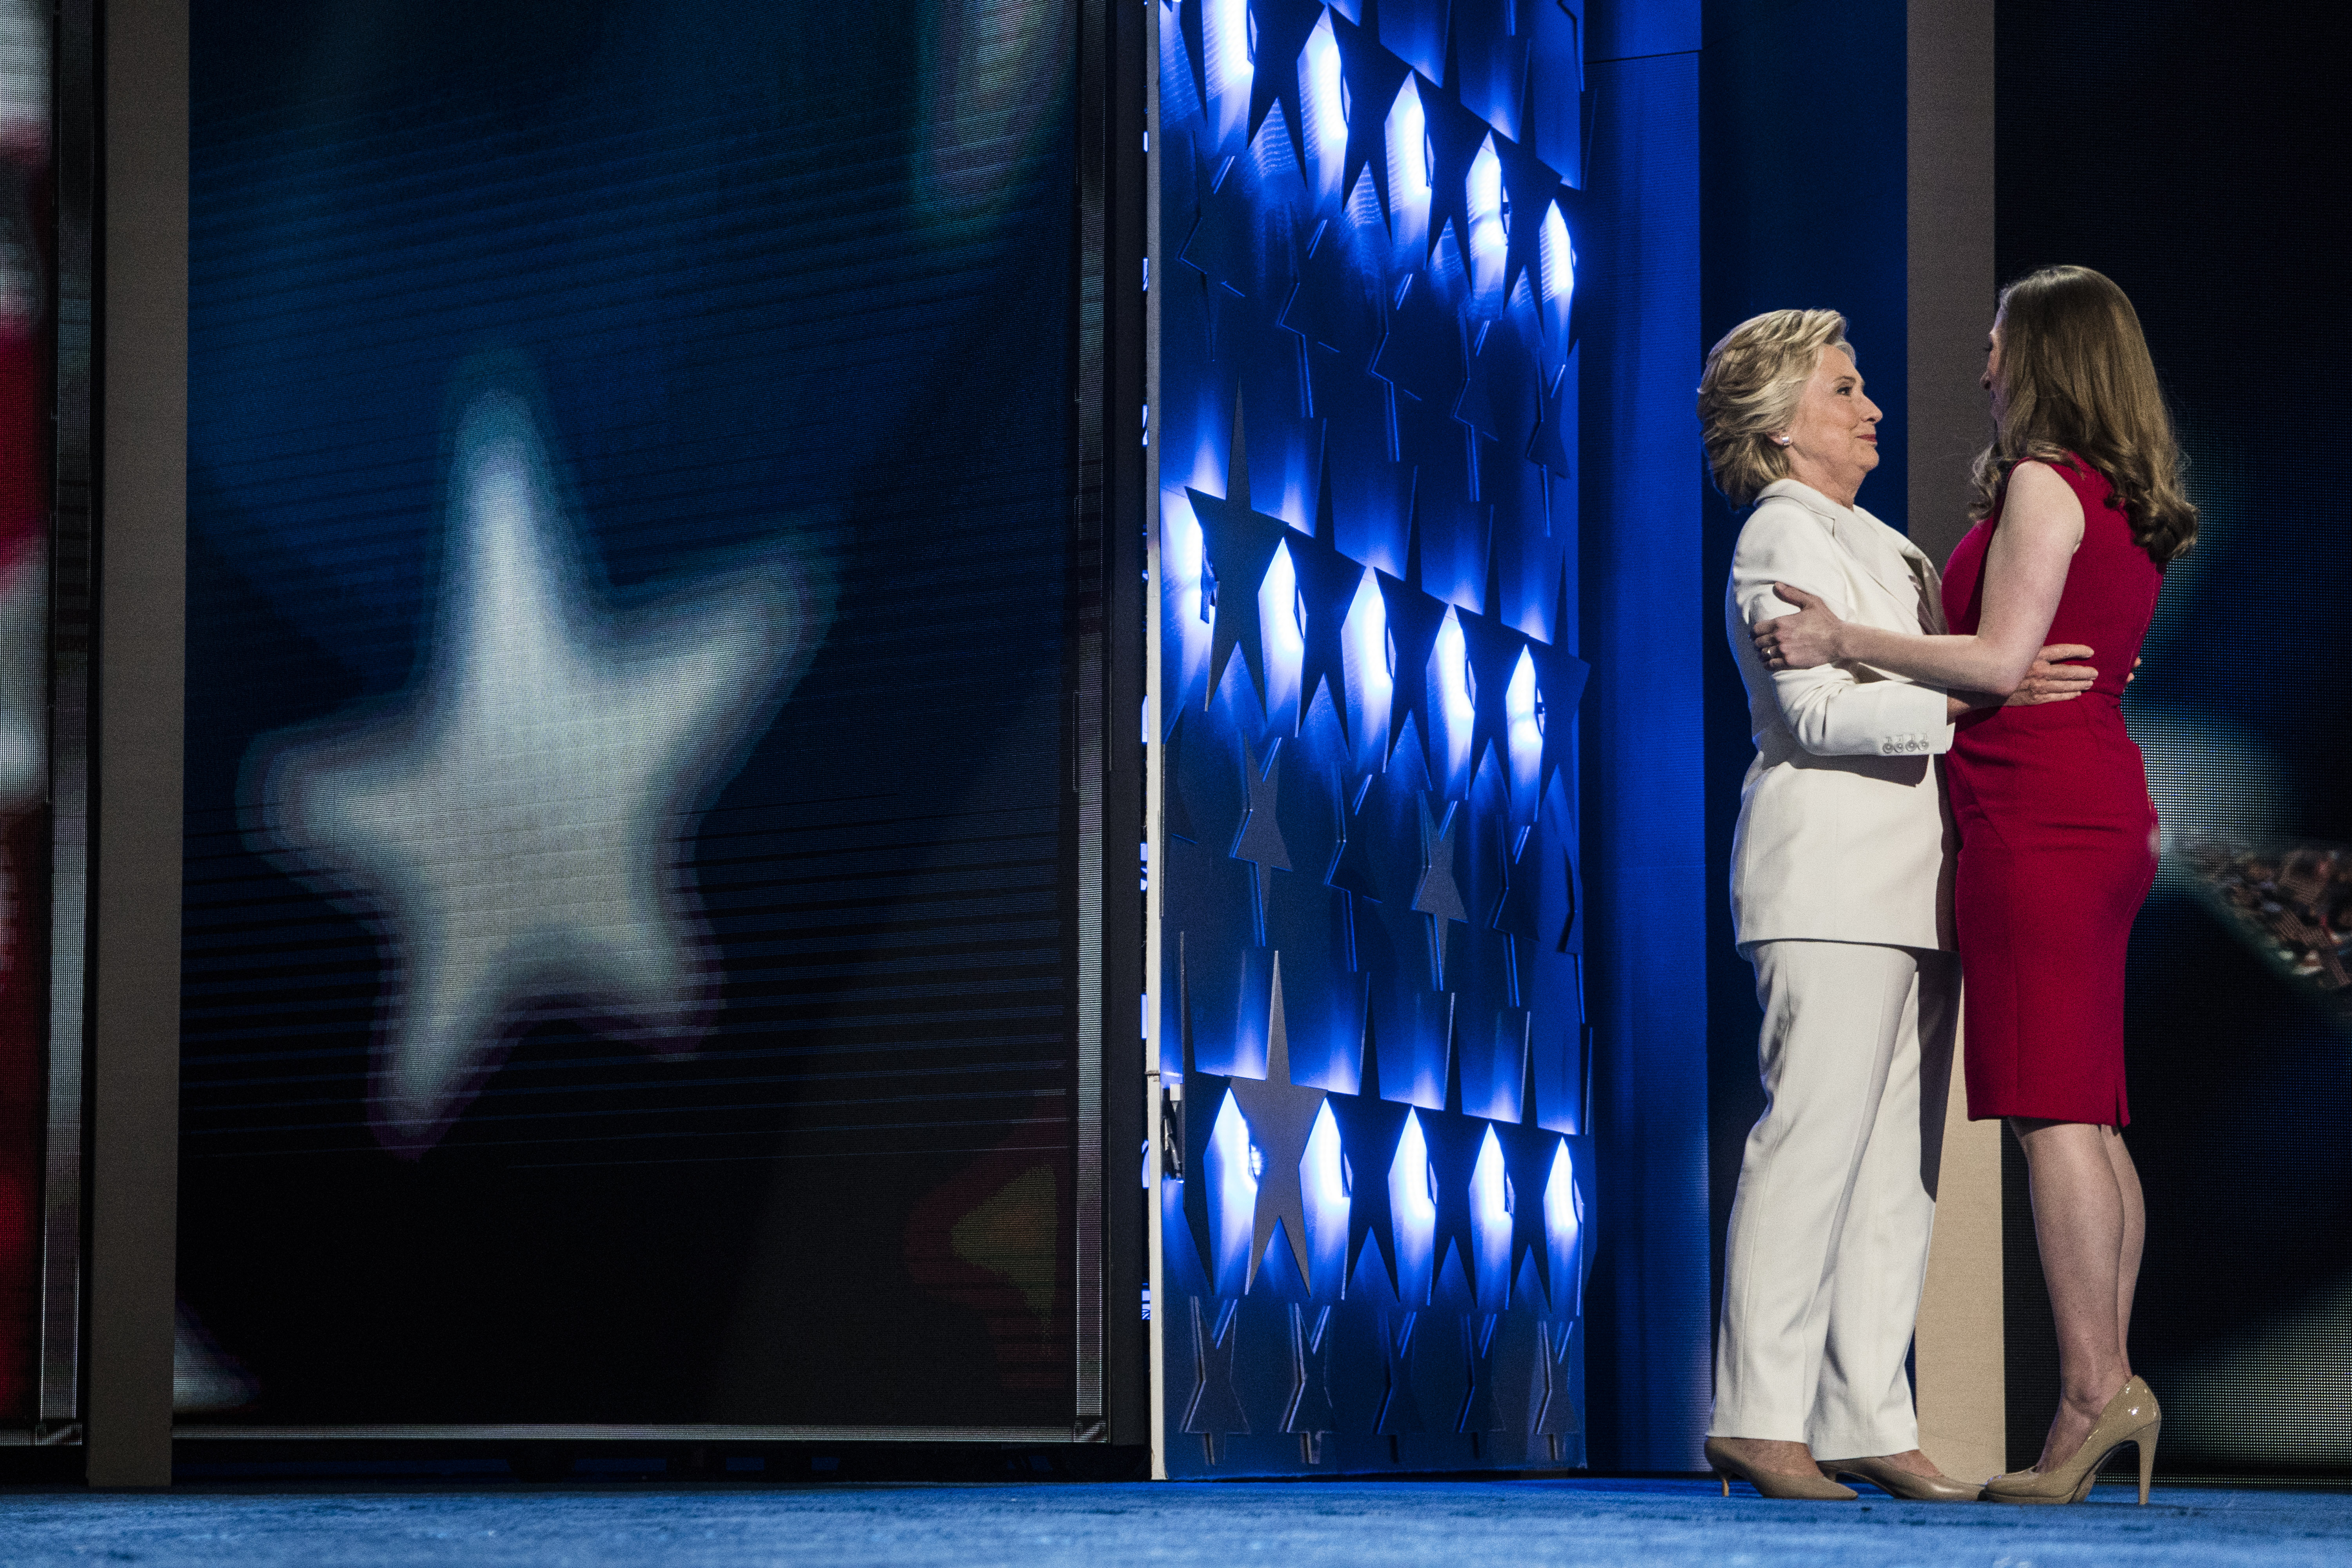 Democratic presidential nominee Hillary Clinton is introduced by her daughter Chelsea at the Democratic National Convention in Philadelphia on July 28, 2016.